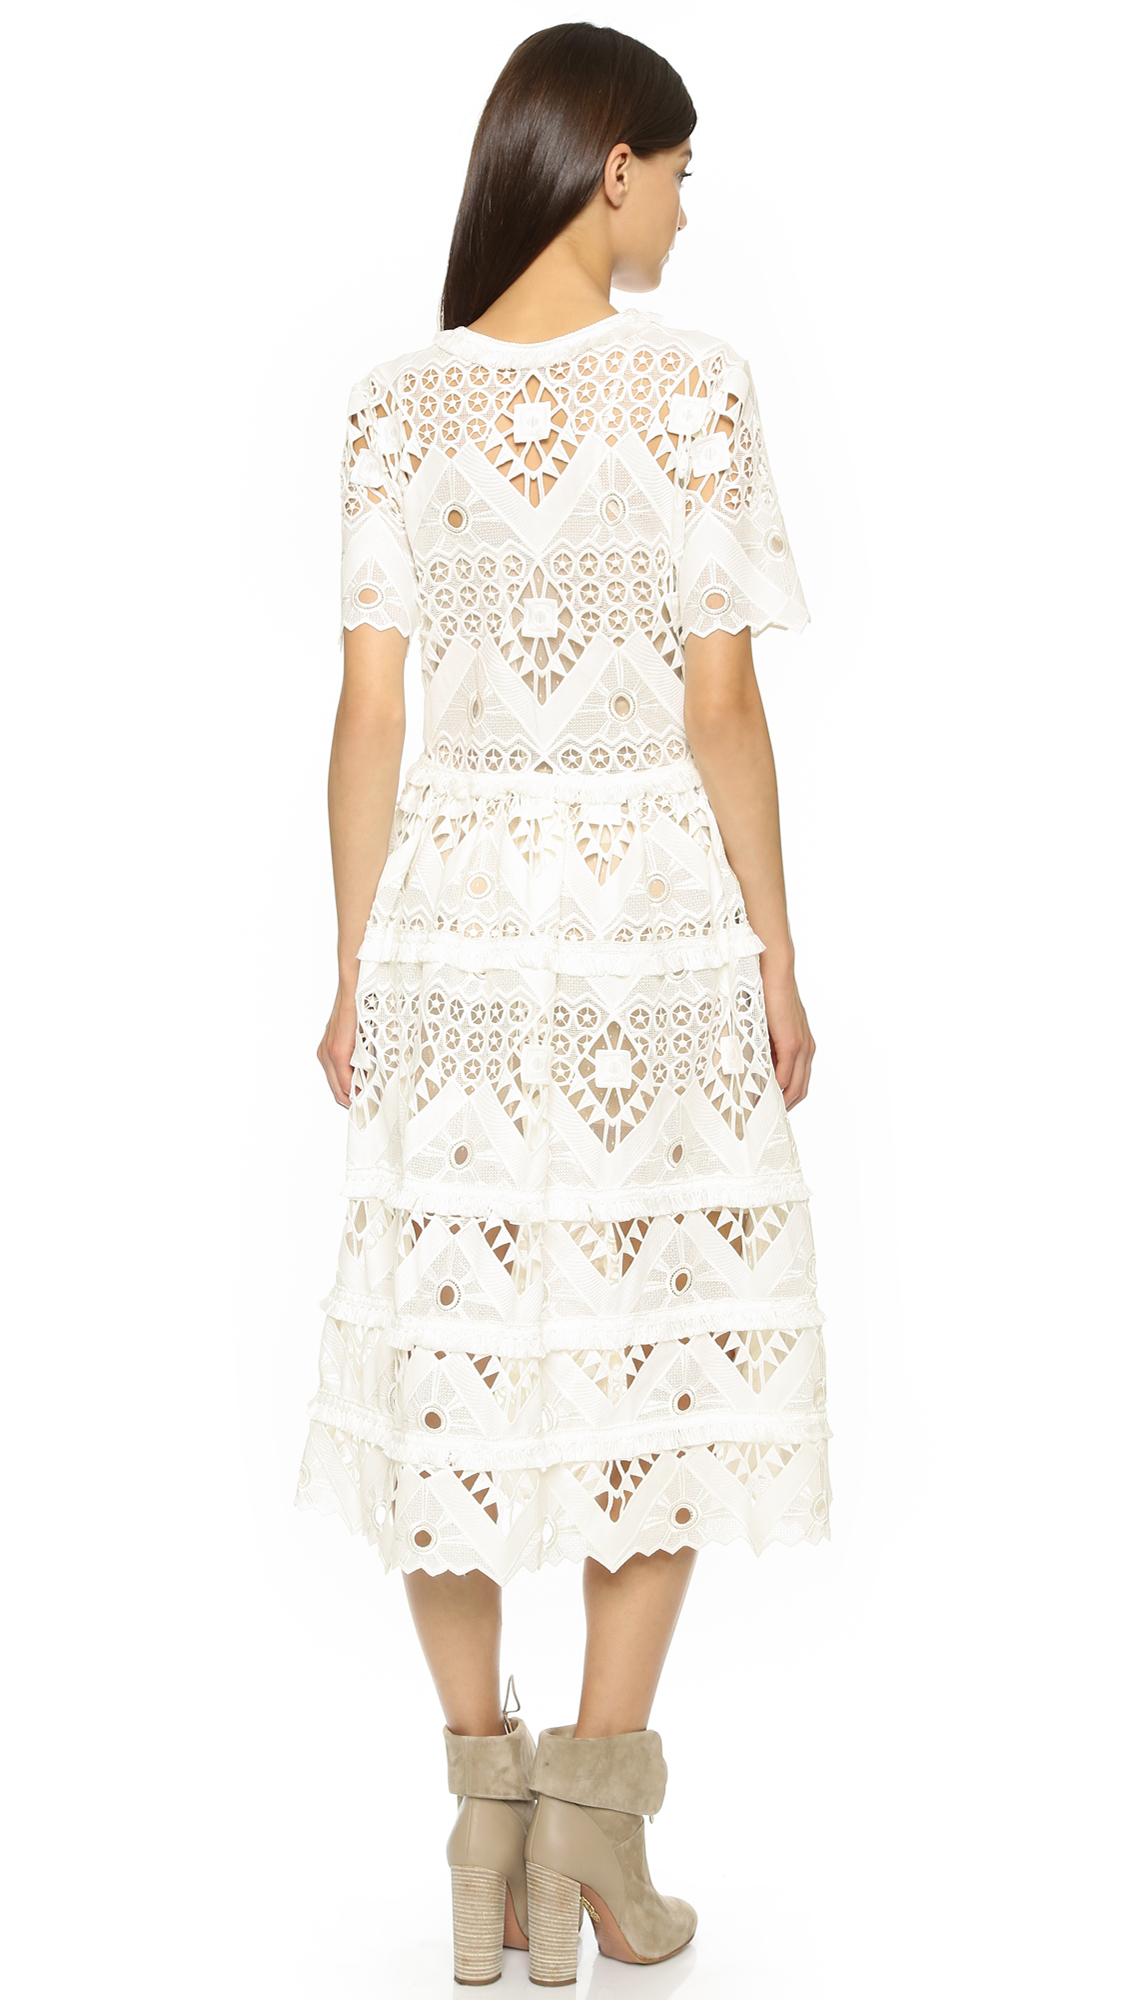 f89c564ae32a Gallery. Previously sold at: Shopbop · Women's Crochet Dresses